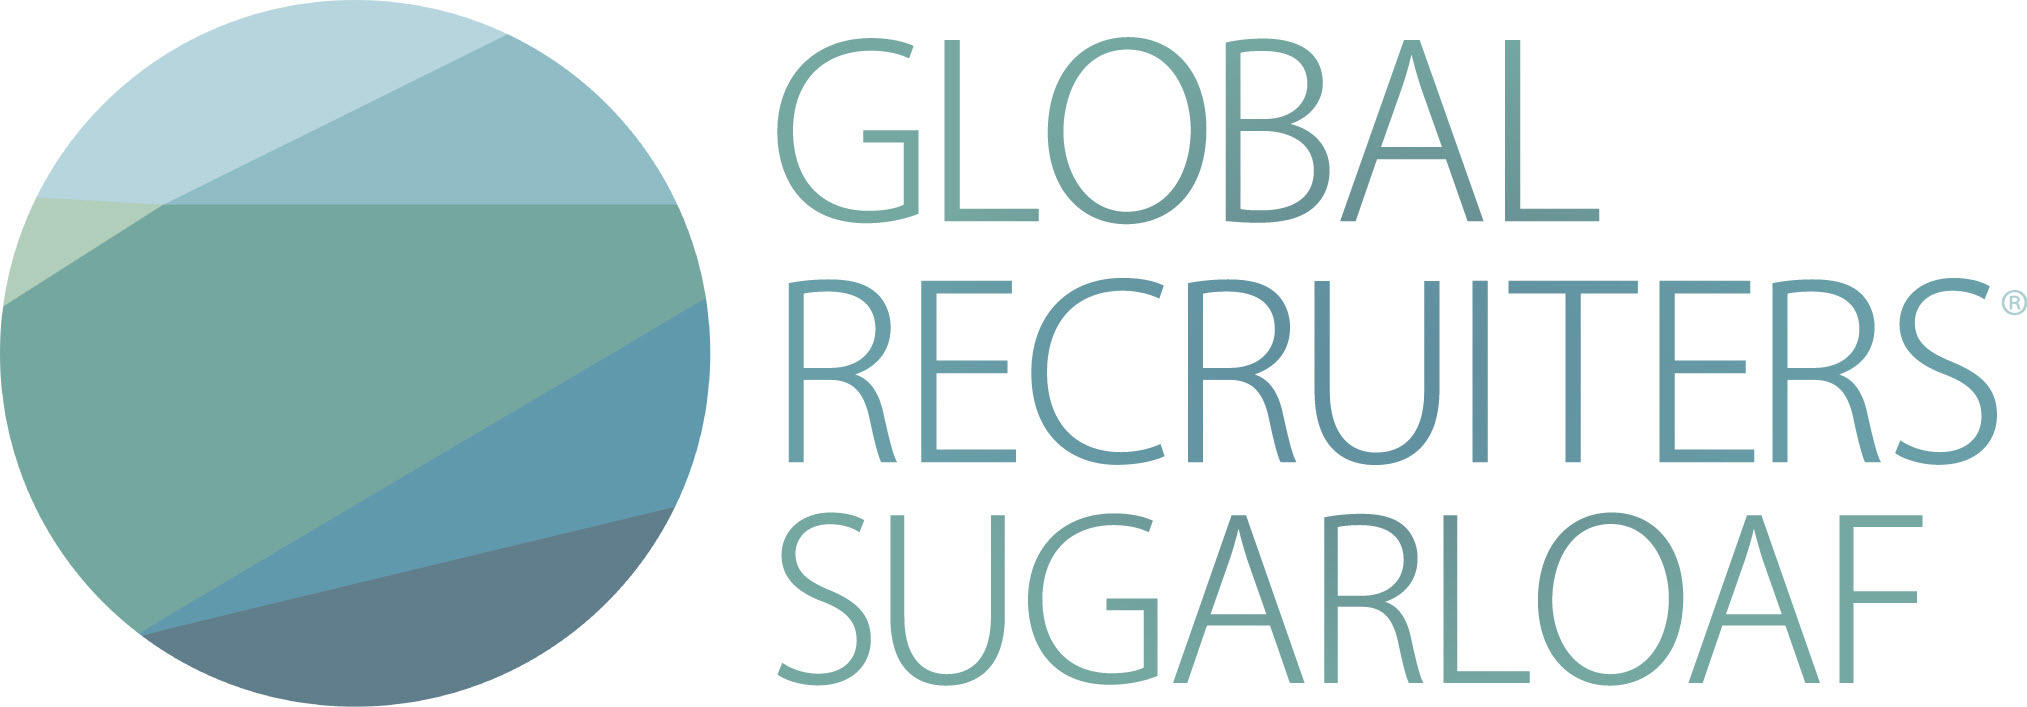 Global Recruiters of Sugarloaf